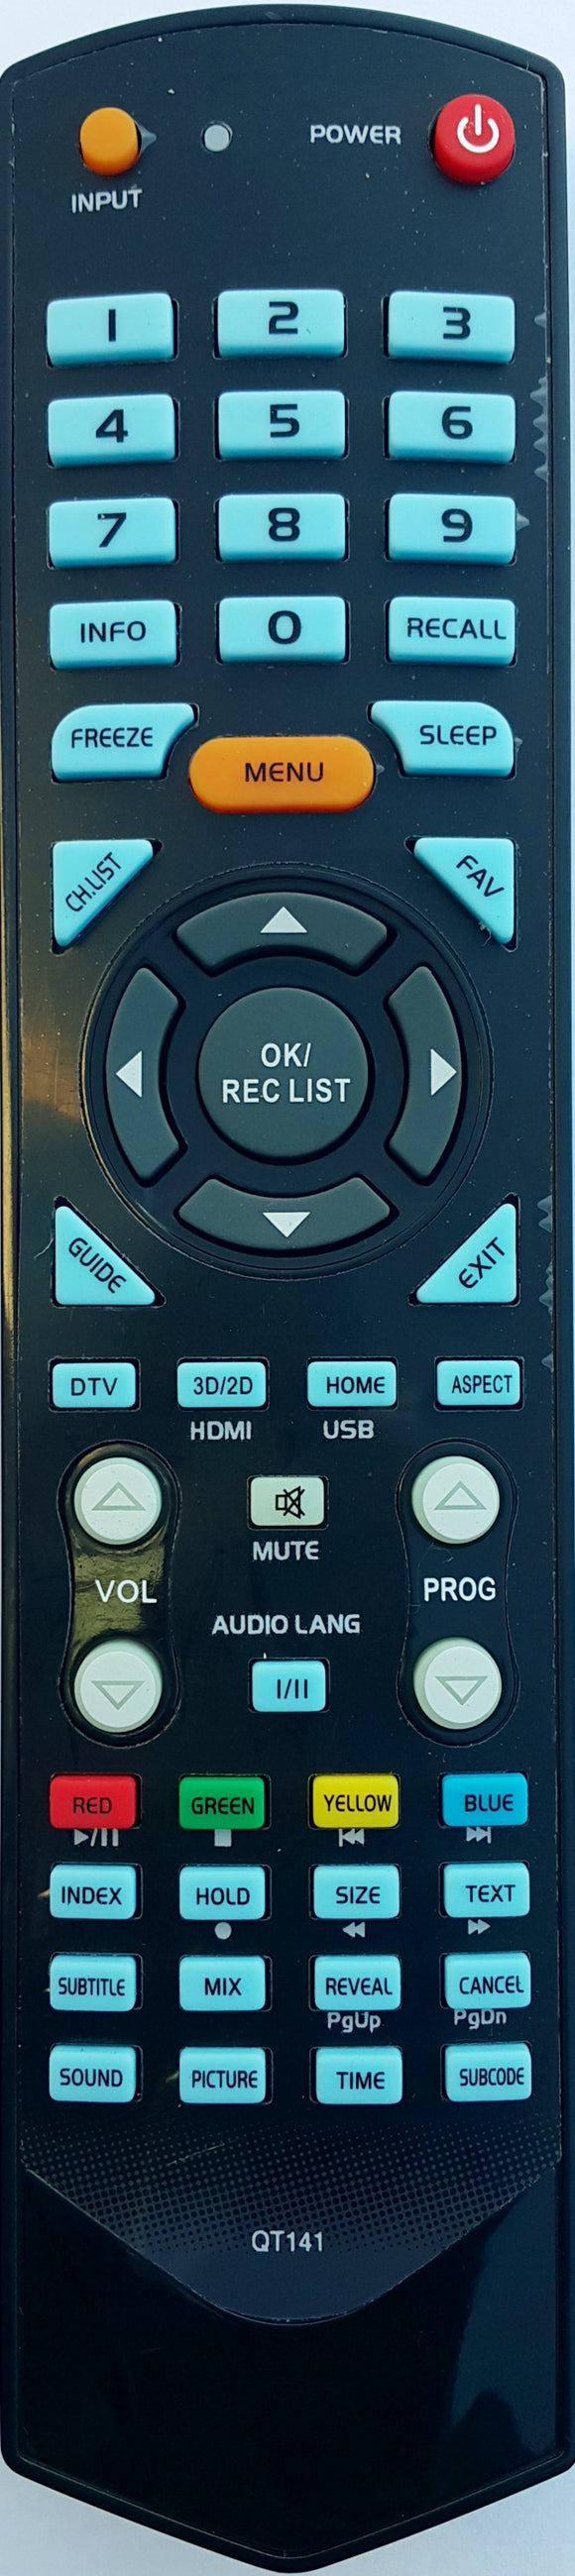 REPLACEMENT TEAC REMOTE CONTROL KK-Y331C KKY331C LCD3265HD LCD4265FHD LE4688FHD LE5588FHD - Remote Control Warehouse